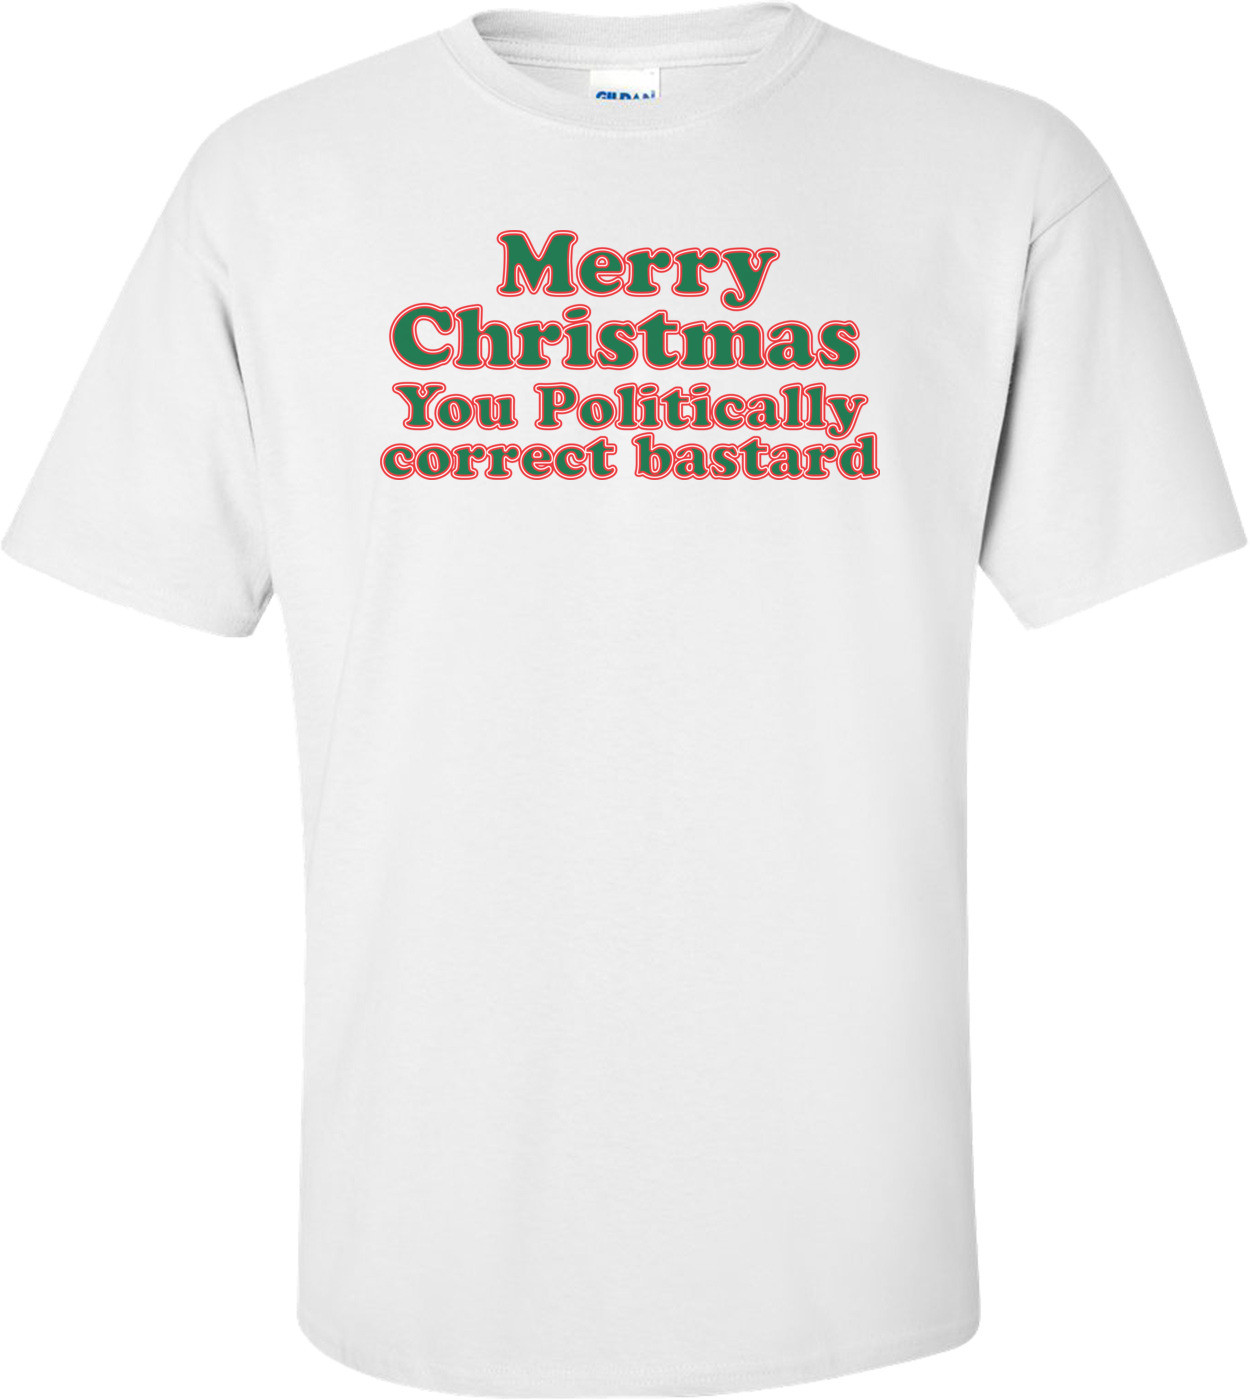 Merry Christmas, You Politically Correct Bastard T-shirt